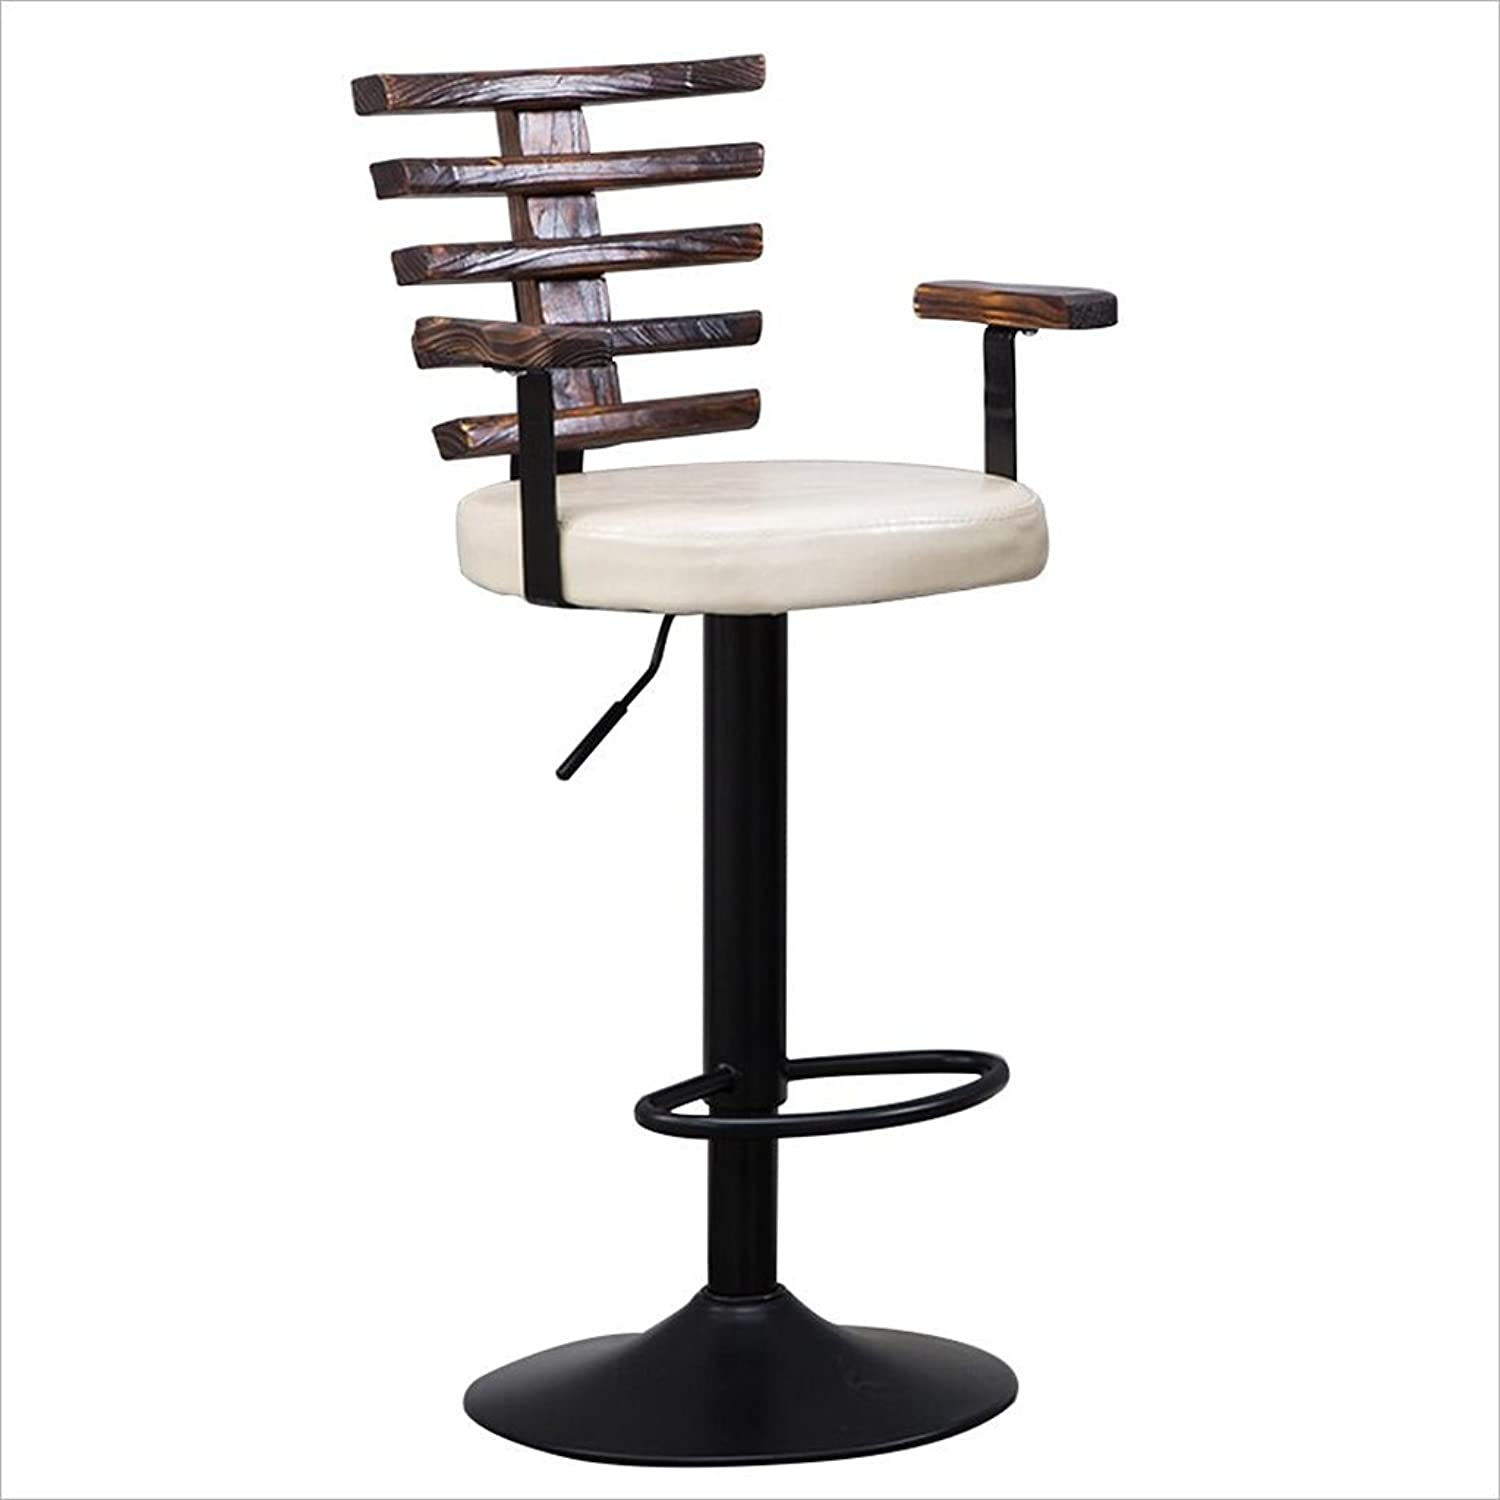 Bar Chairs, Round Stool High Stool Dining Chair Iron Chair Height Adjustable 95115Cm Retro Style,White